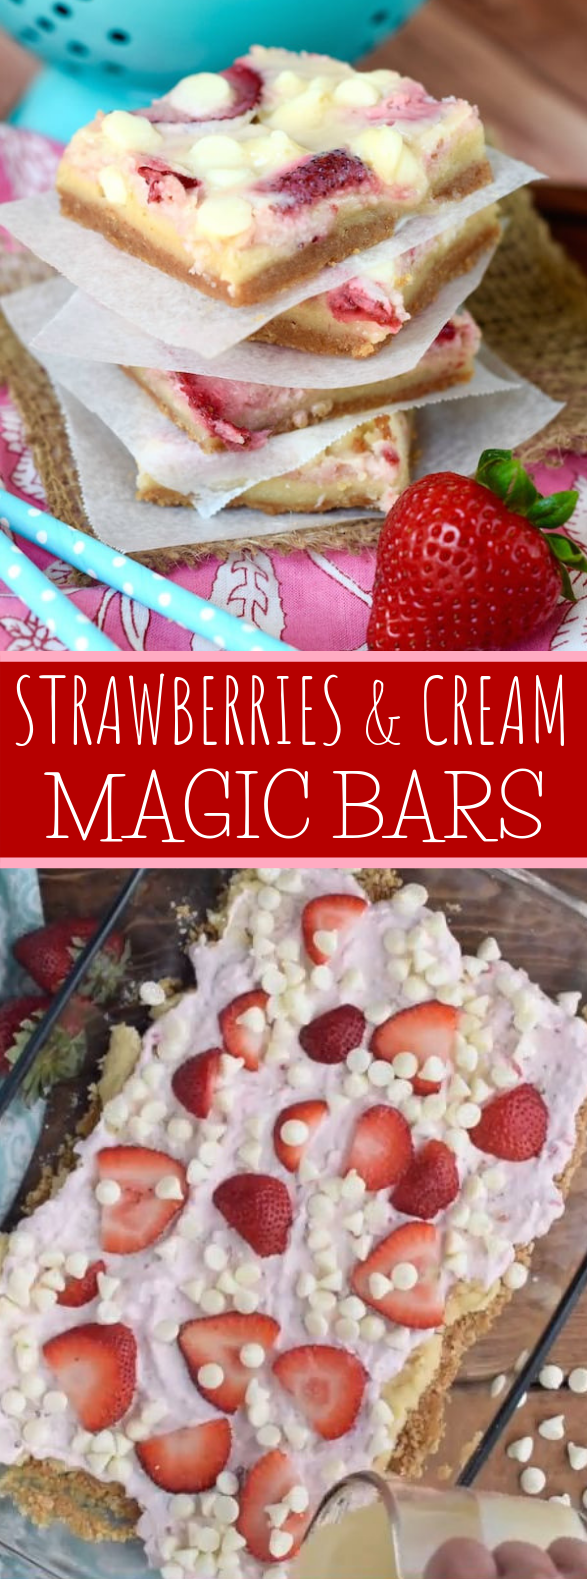 STRAWBERRIES AND CREAM MAGIC BARS #desserts #sugarcookie